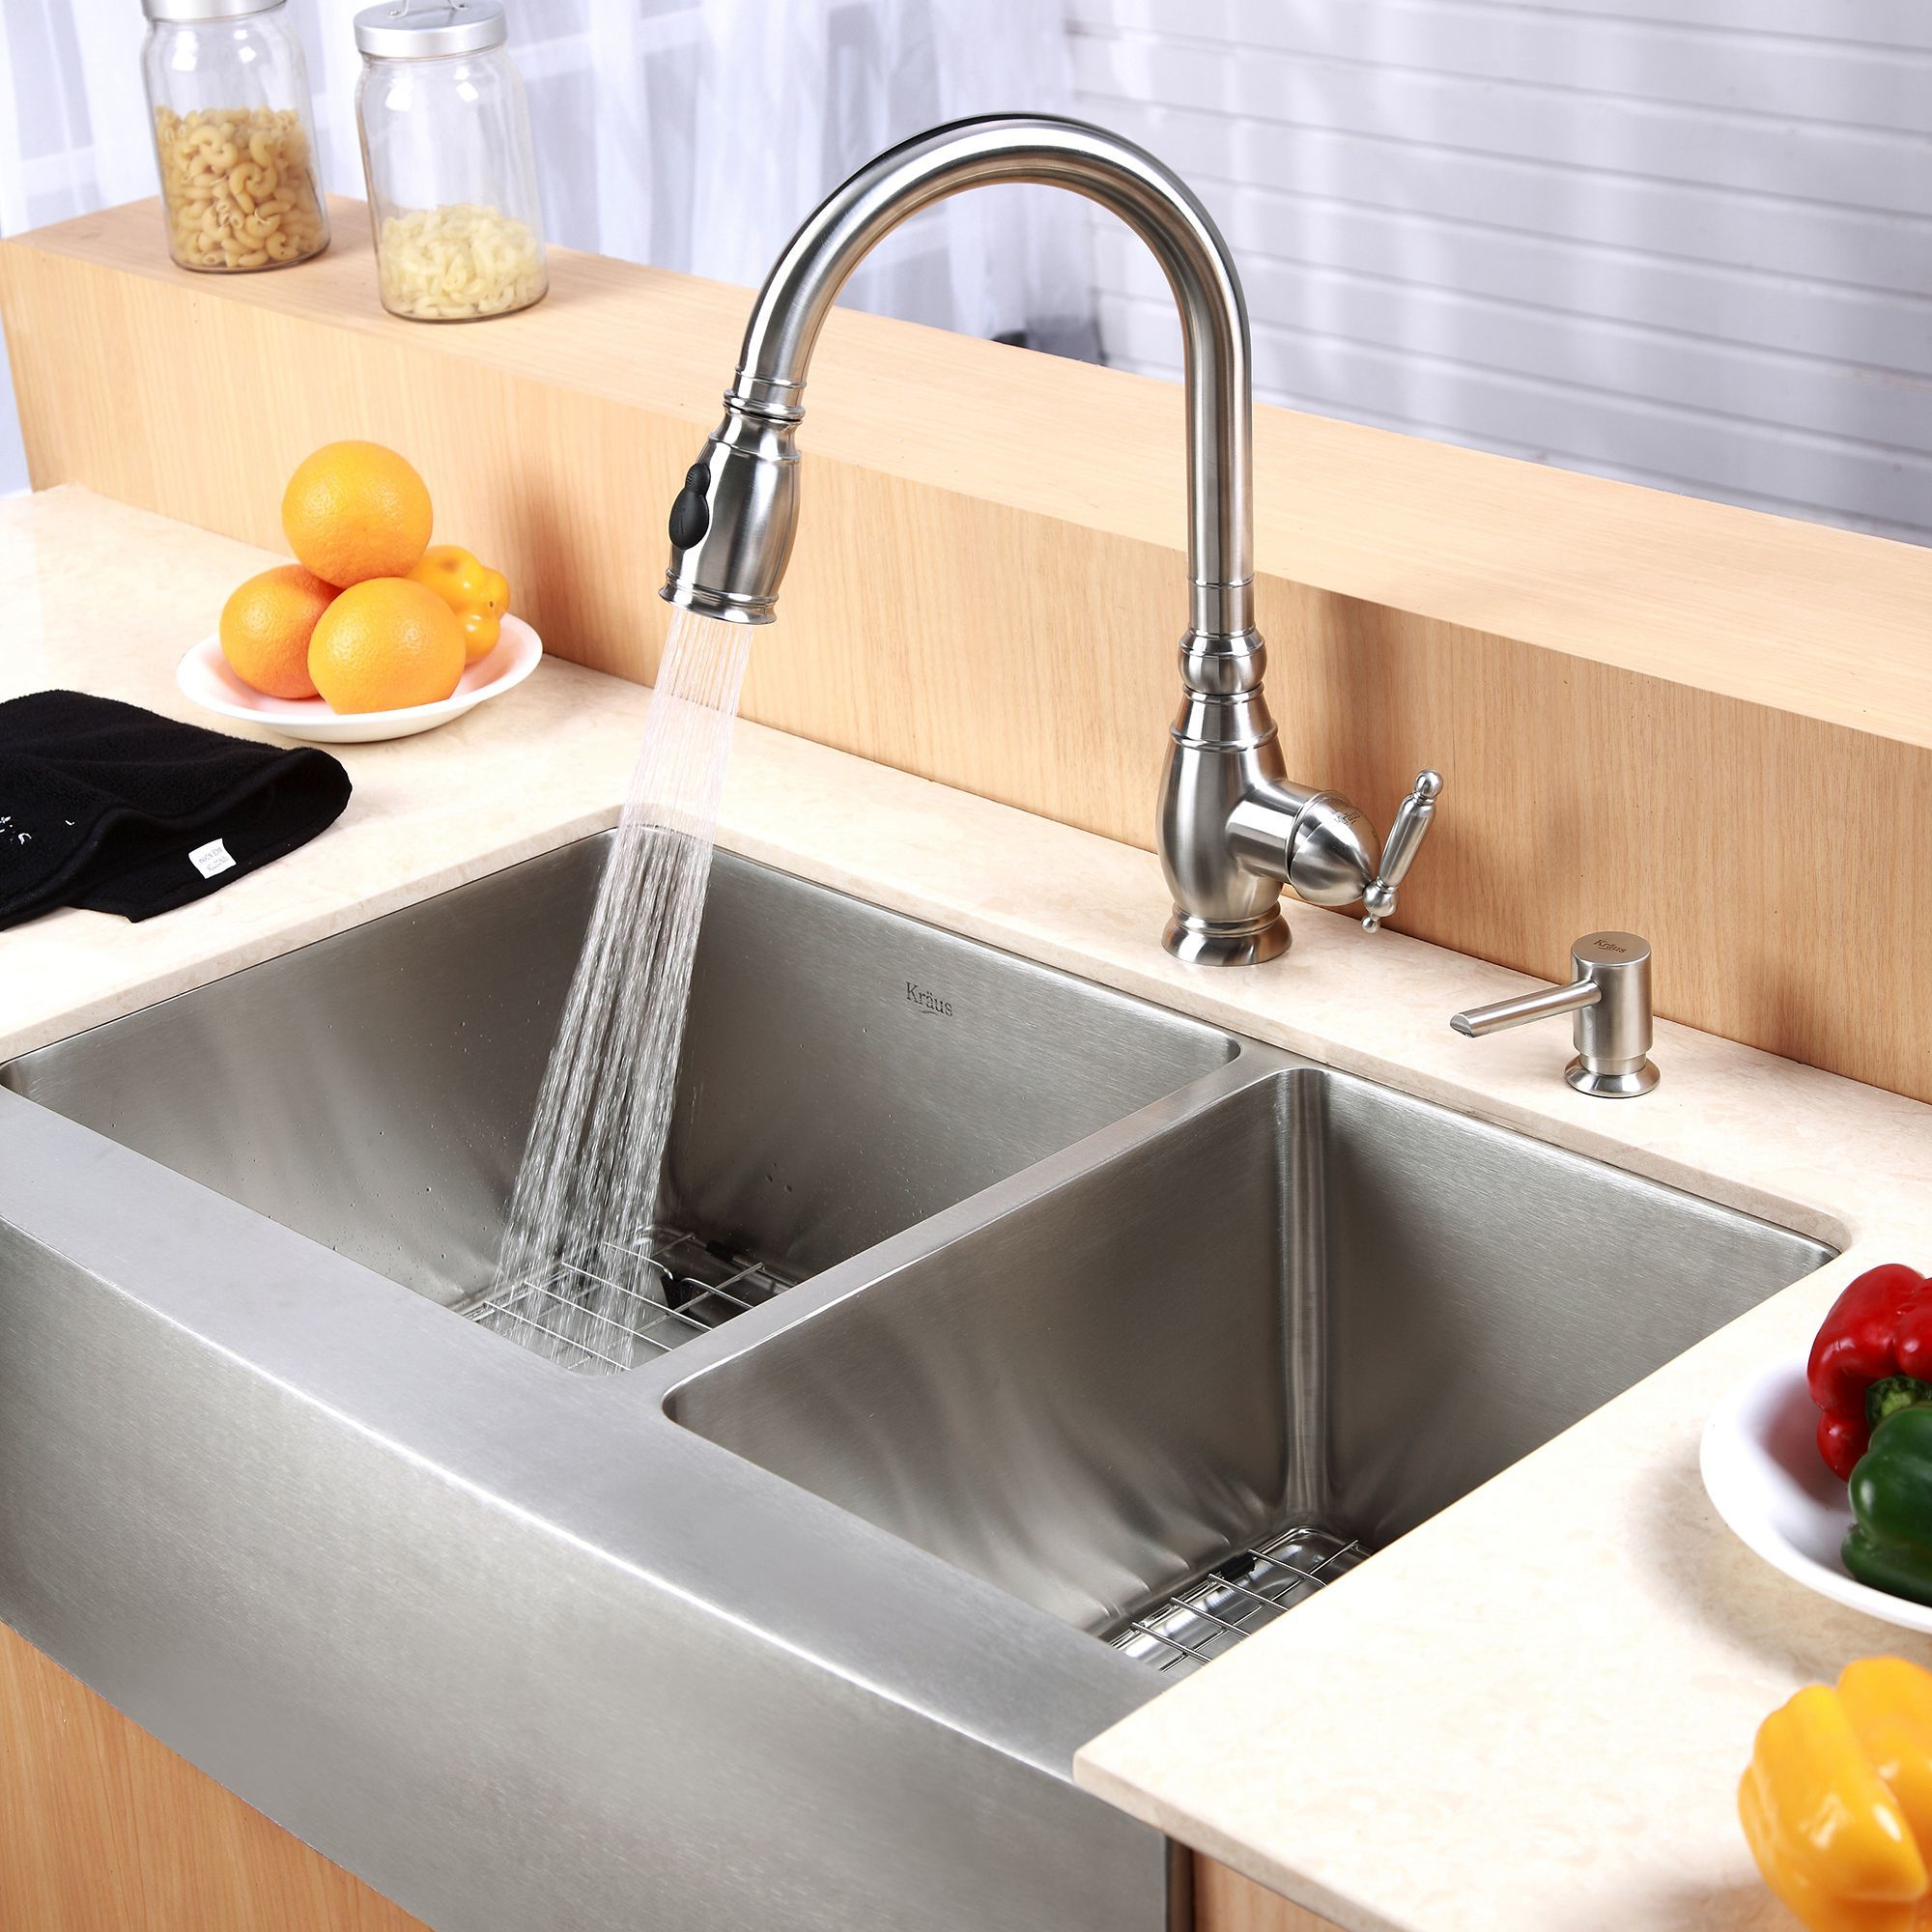 Kitchen Sinks Double Kraus khf203 33 stainless steel 32 78 double basin 16 gauge kraus khf203 33 stainless steel 32 78 double basin 16 gauge stainless steel kitchen sink for farmhouse installations with 6040 split basin racks and workwithnaturefo